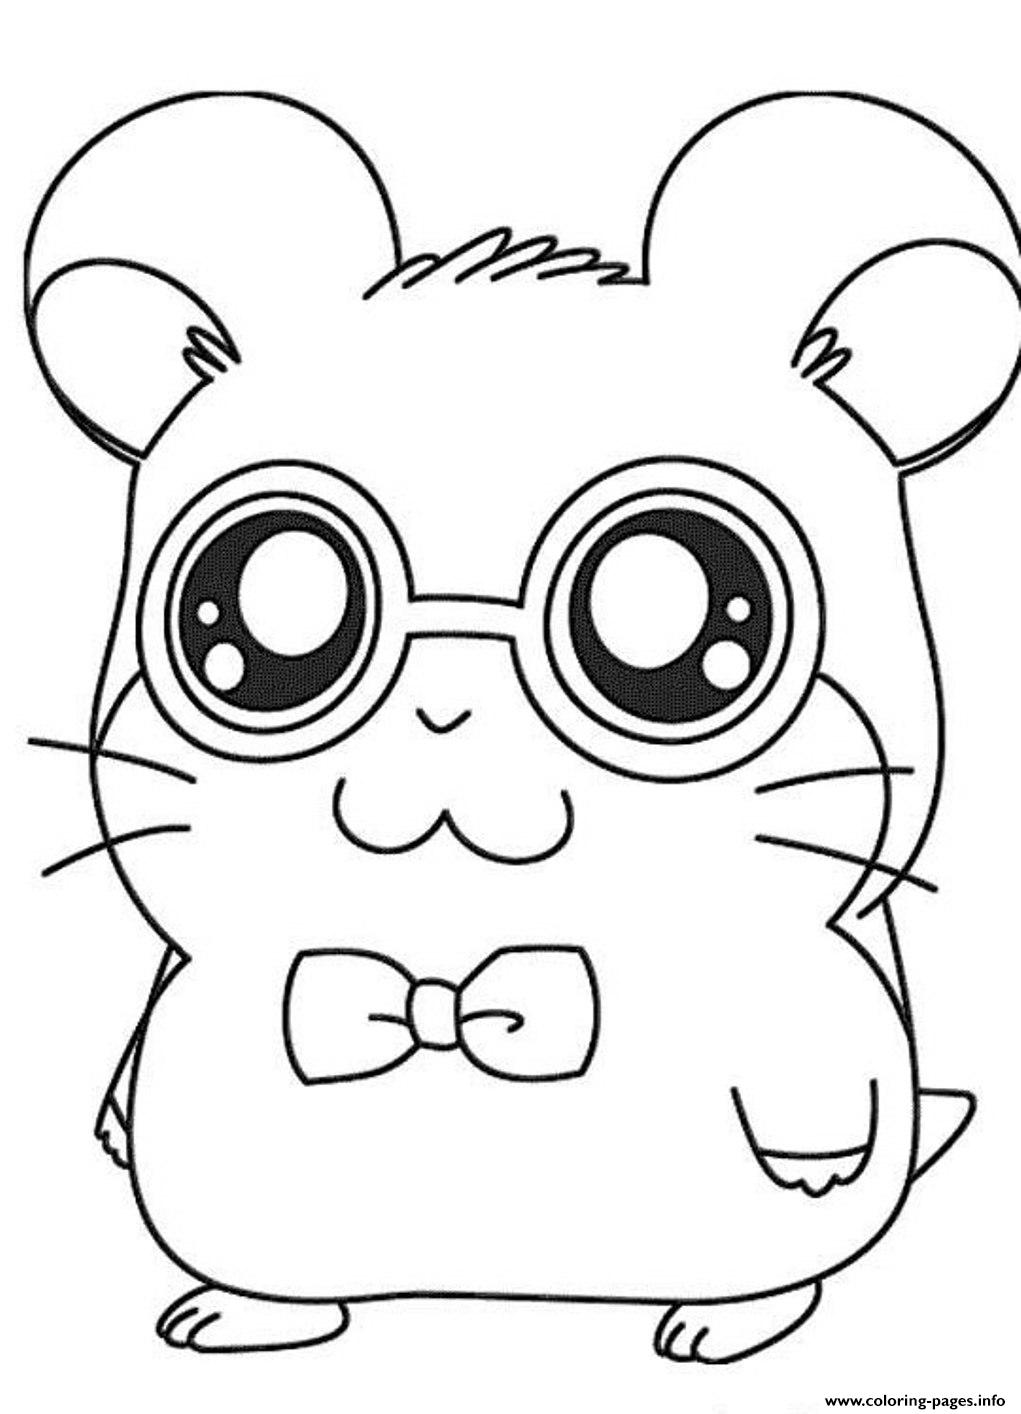 Cute Dexter Hamtaro Coloring Pages Coloring Pages Printable